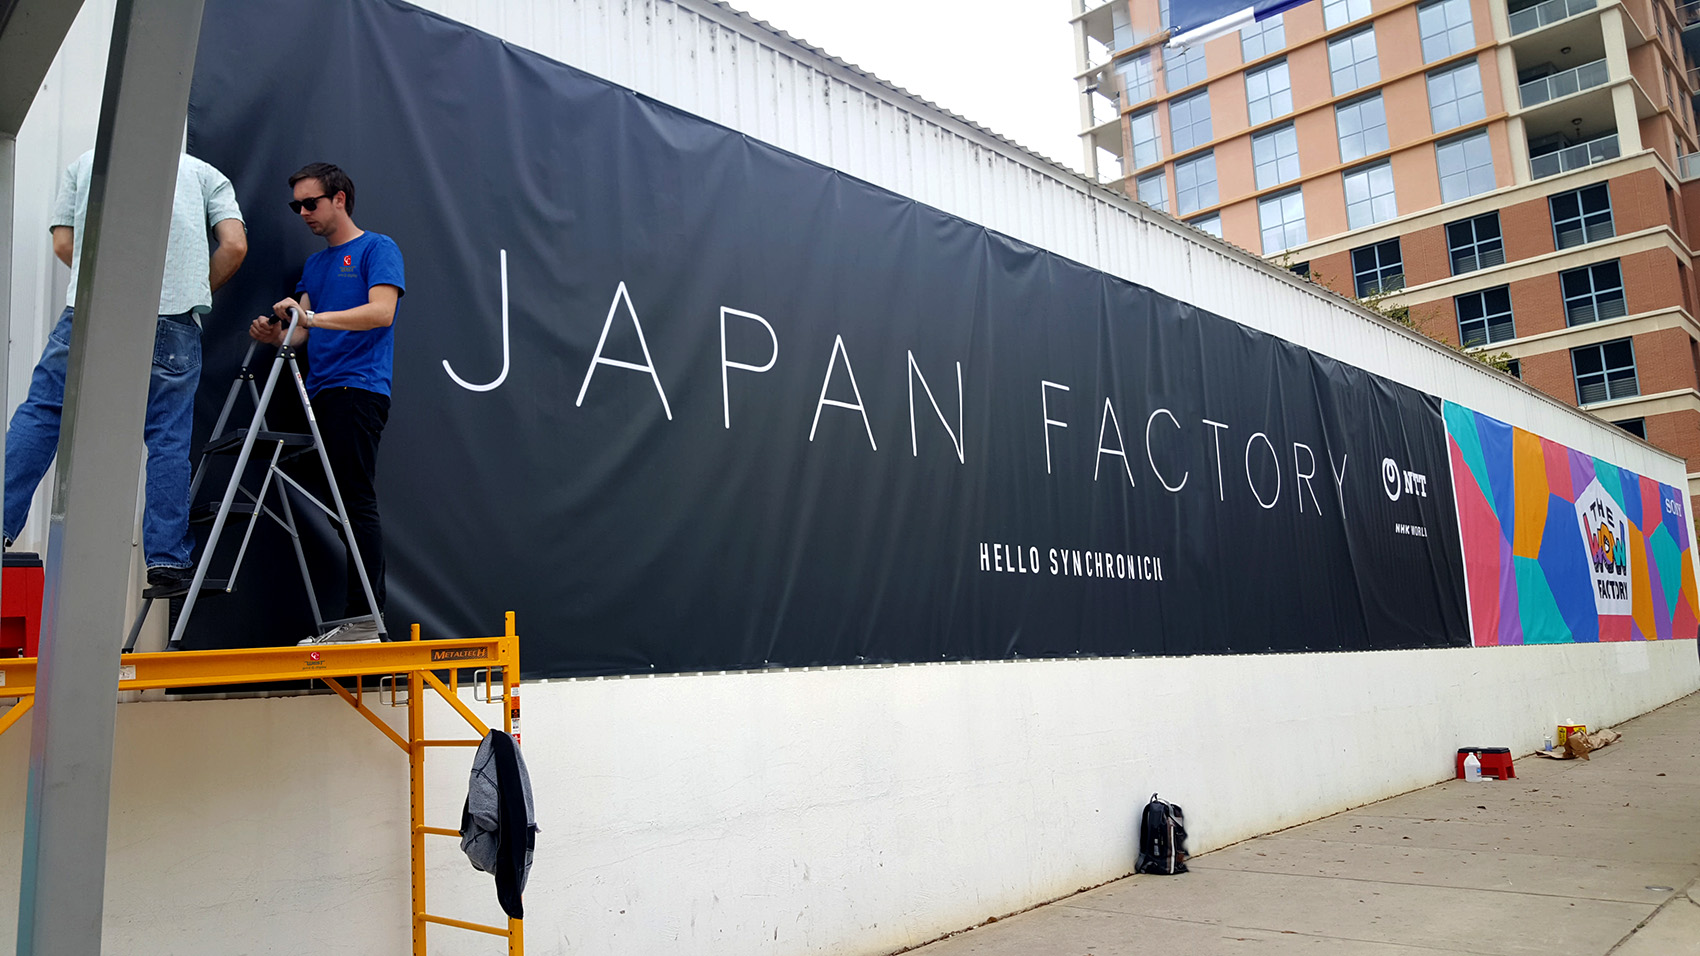 We print and install large banners.